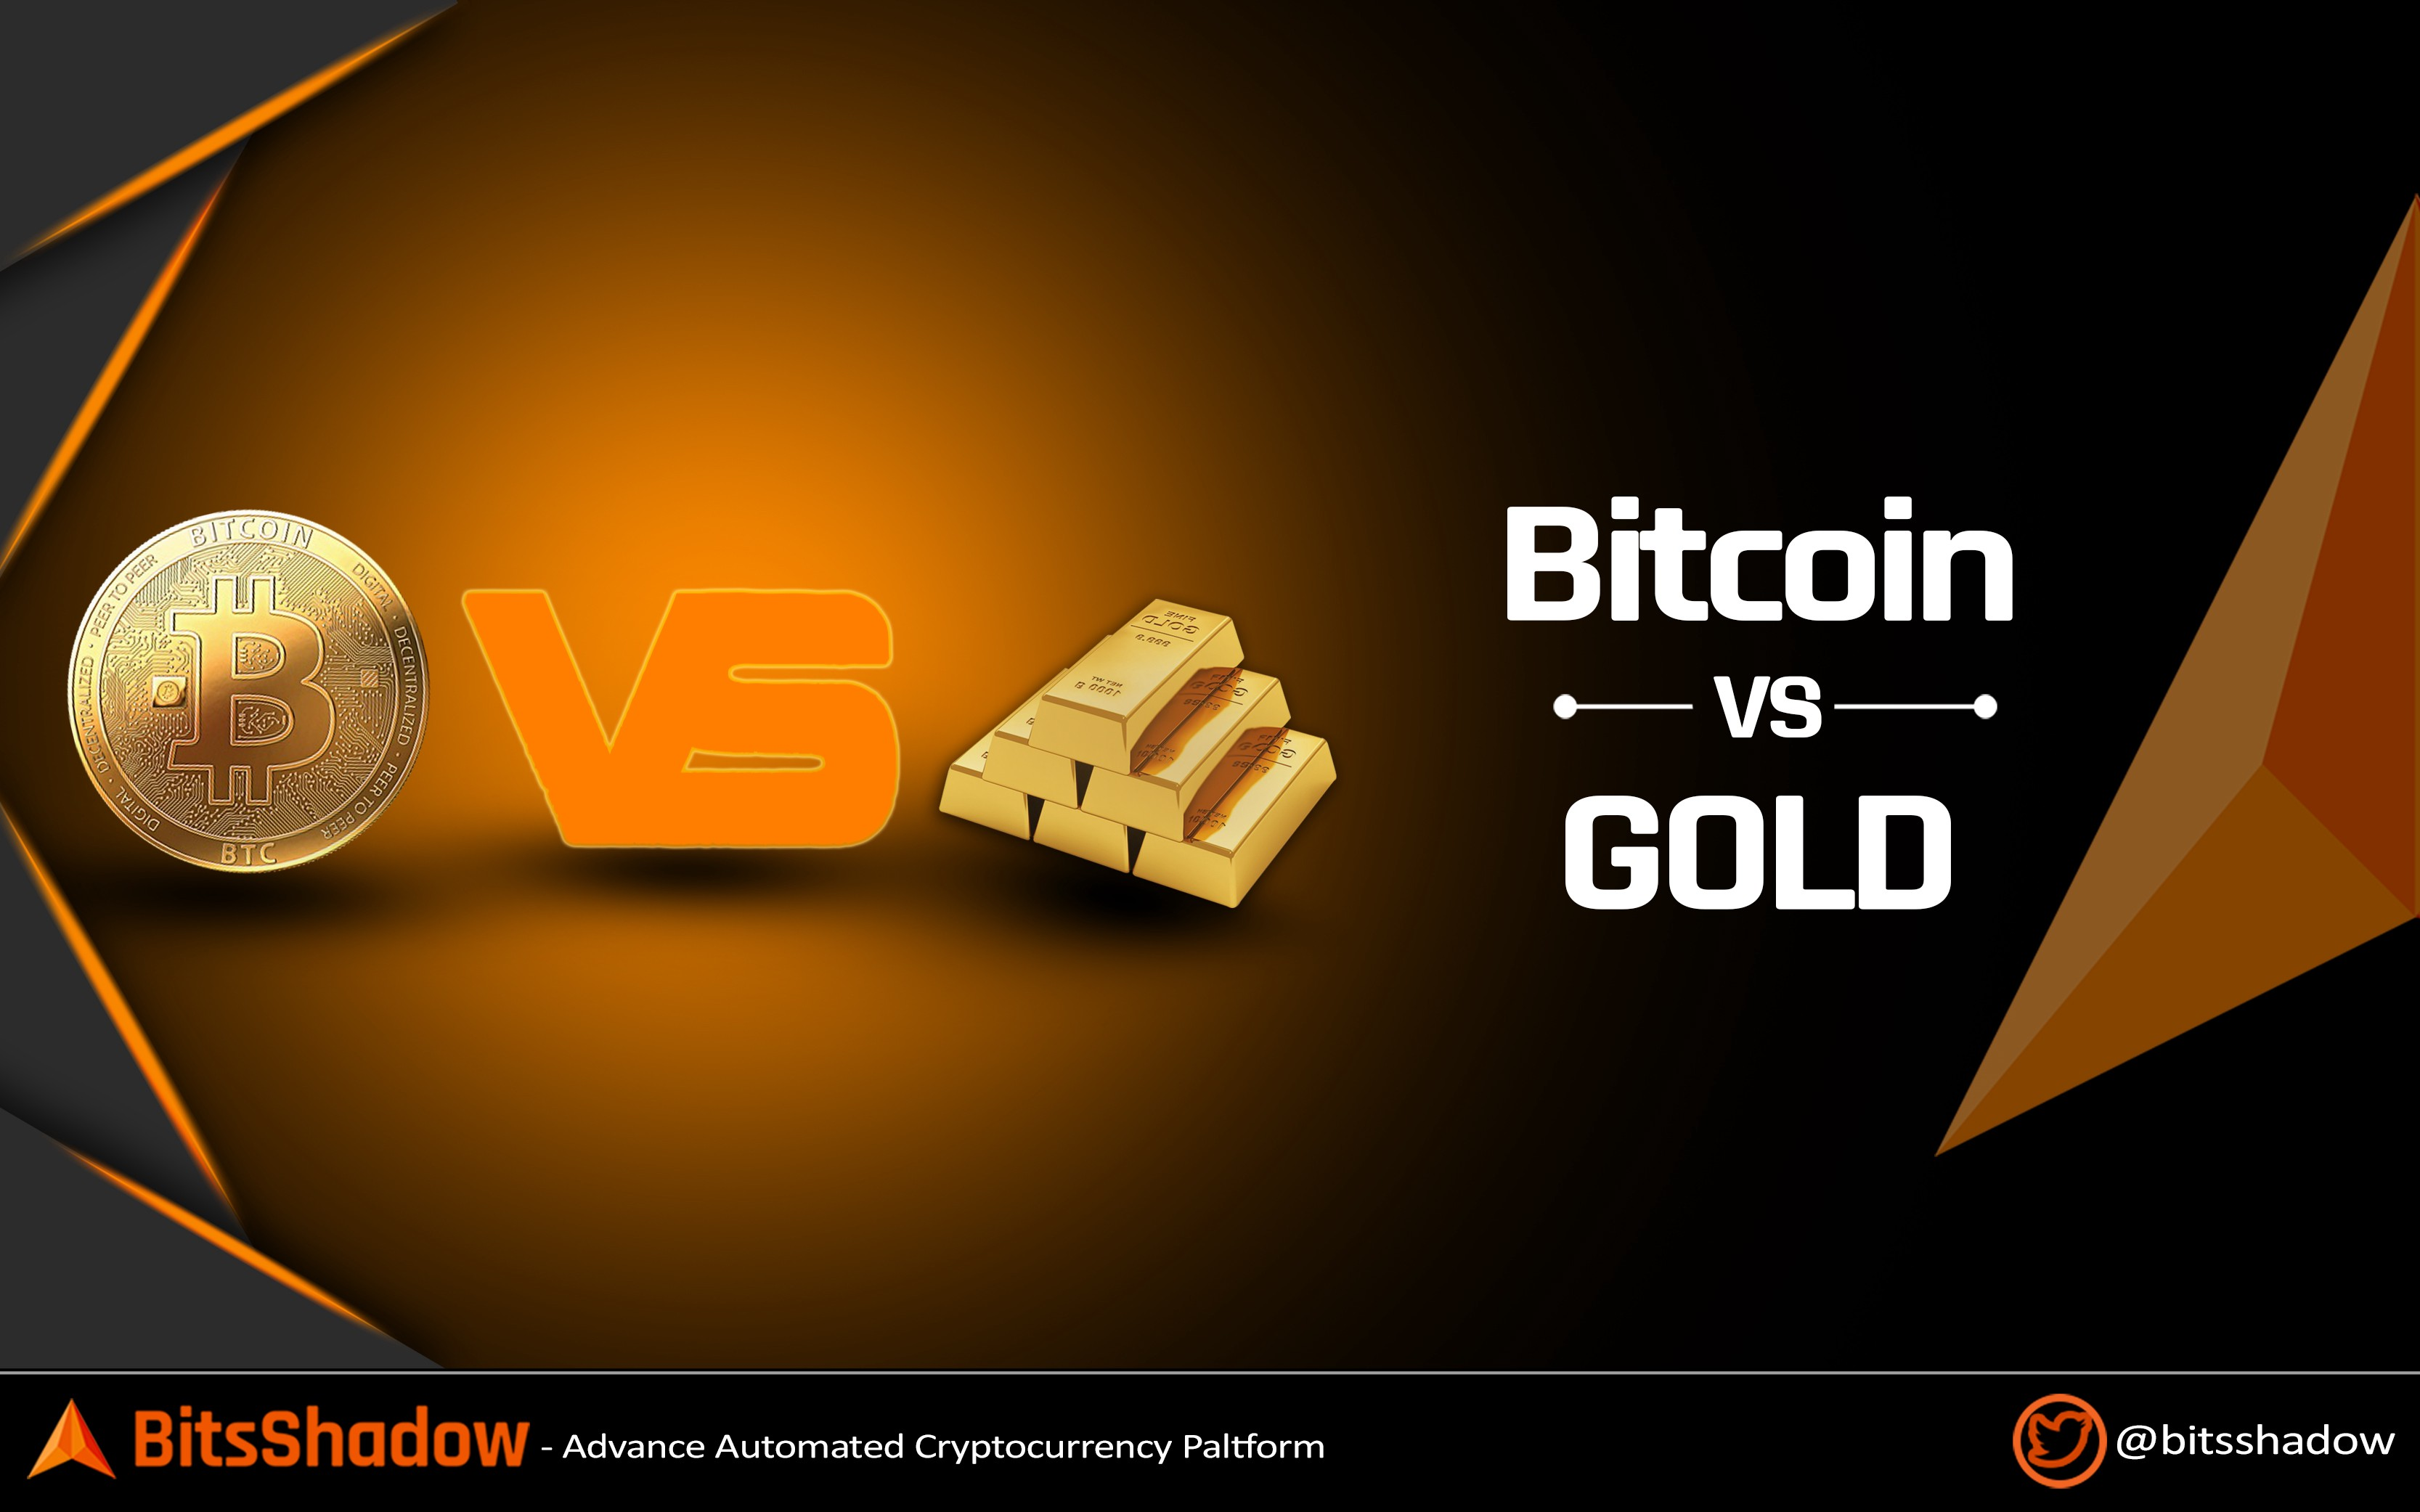 bitcoins to invest in gold